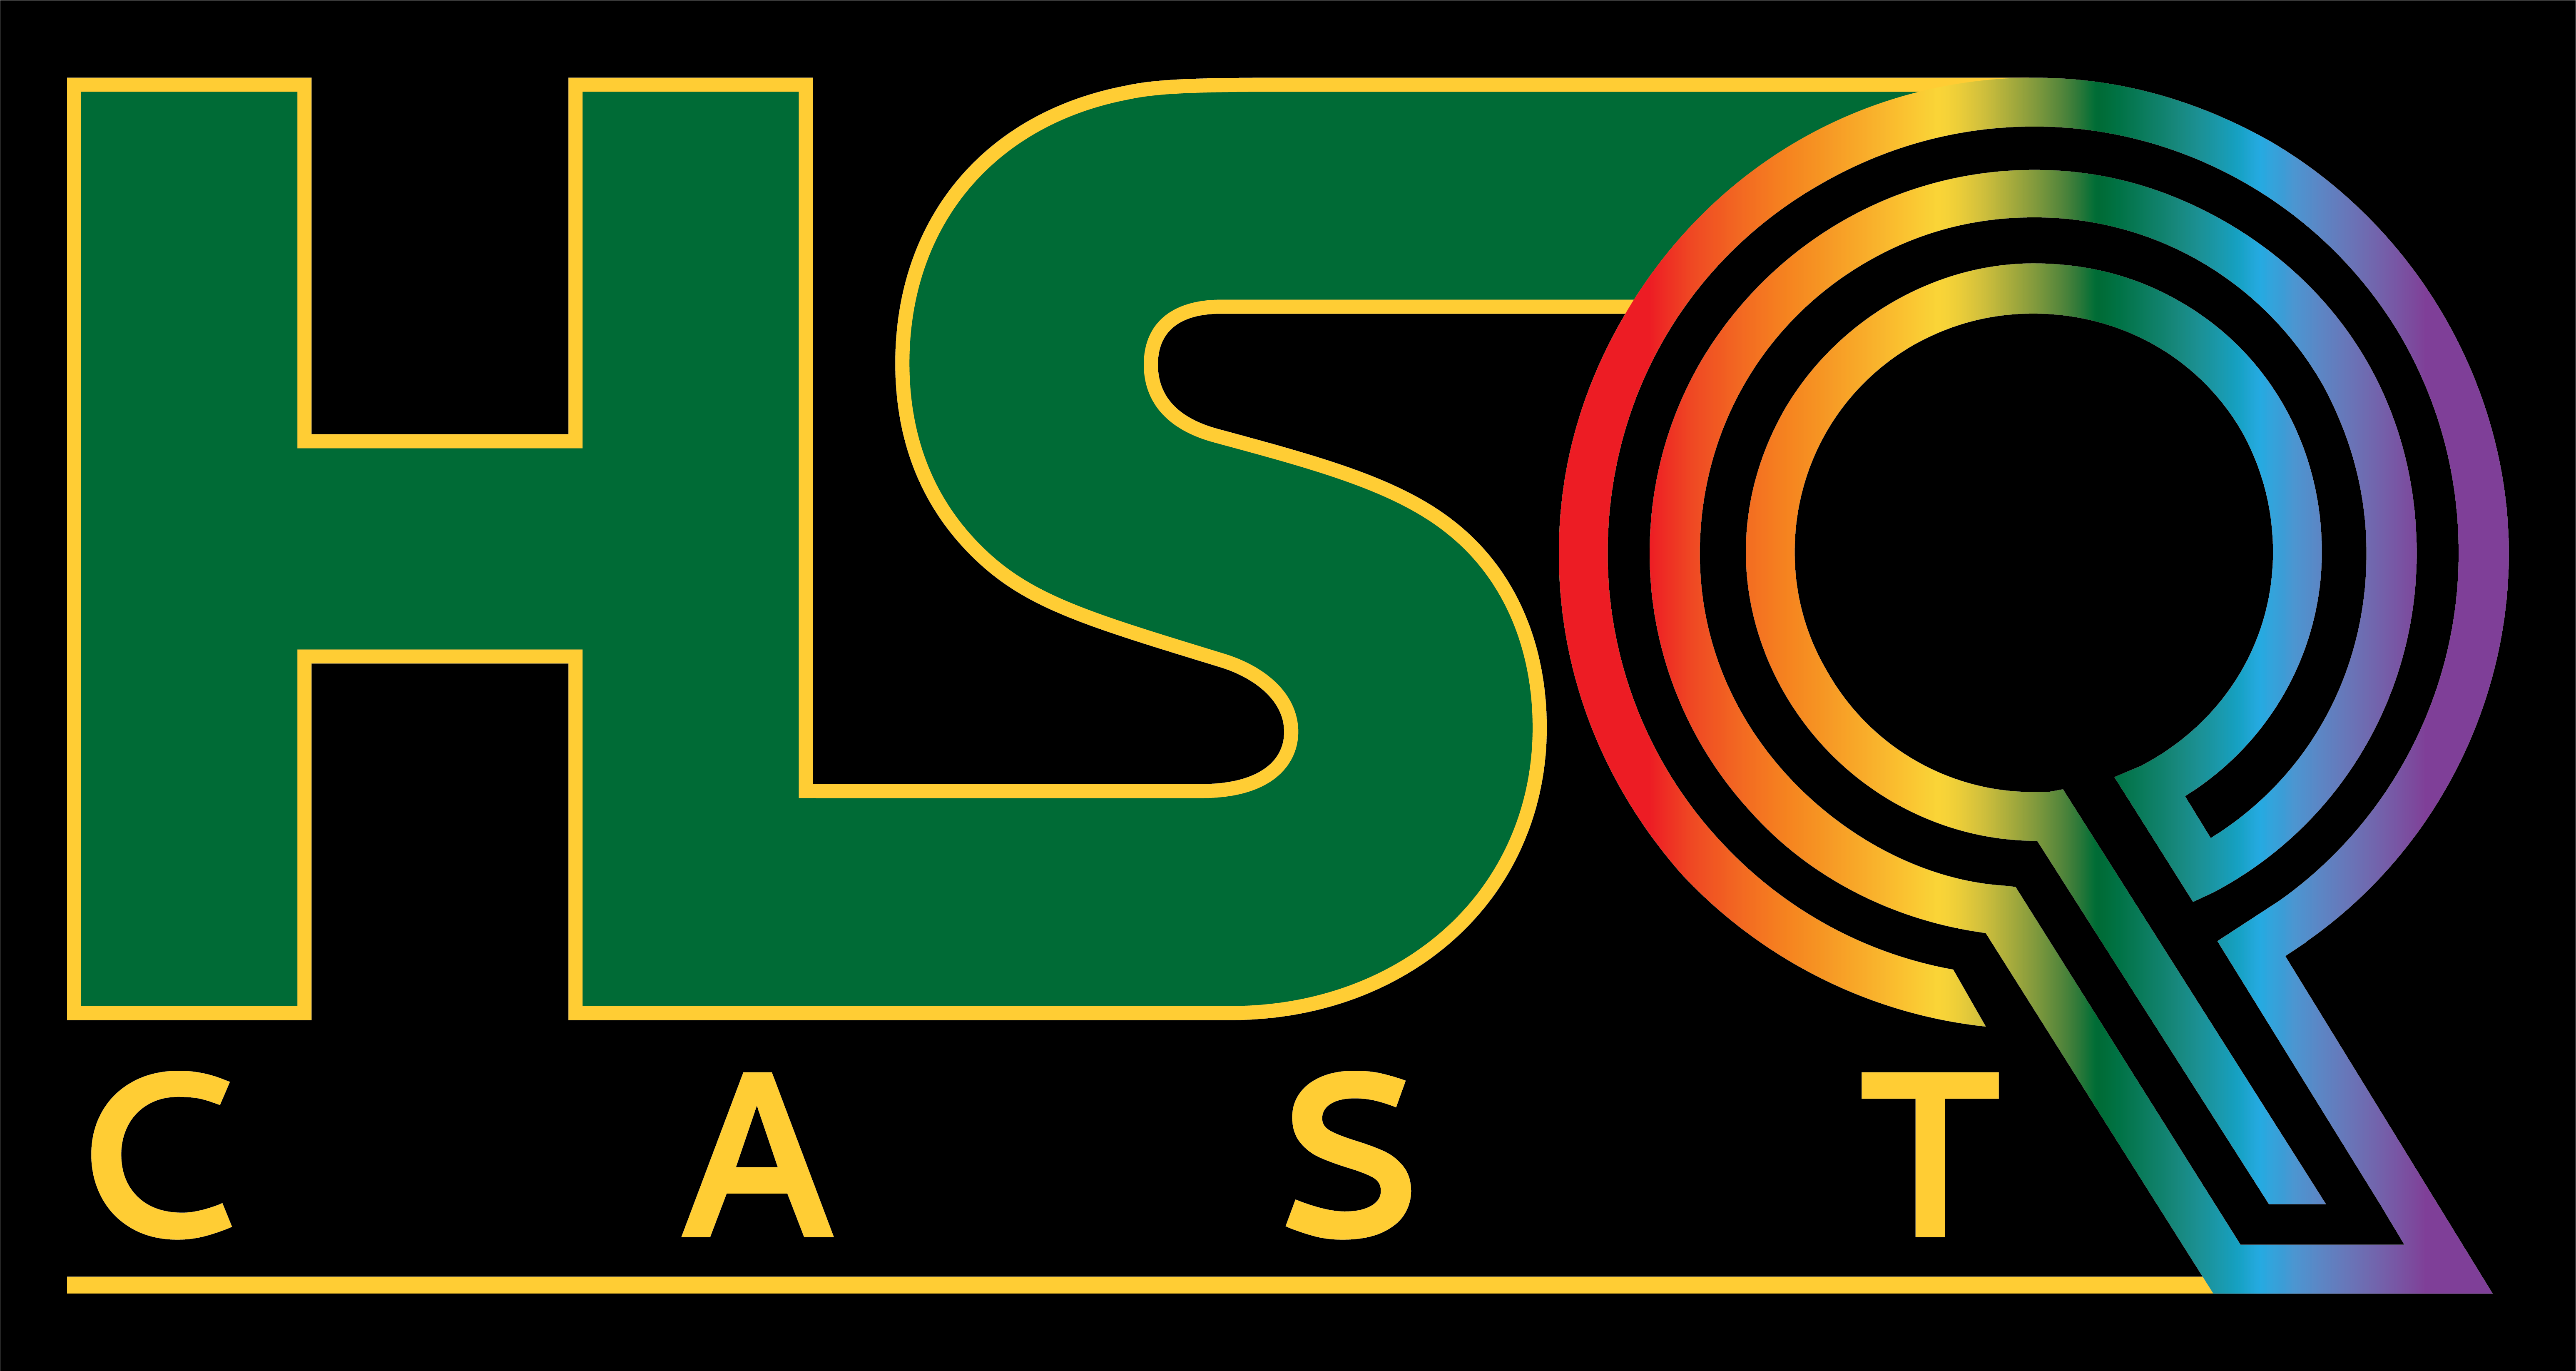 HSQ logo in humboldt green & gold and rainbow colors w/black background